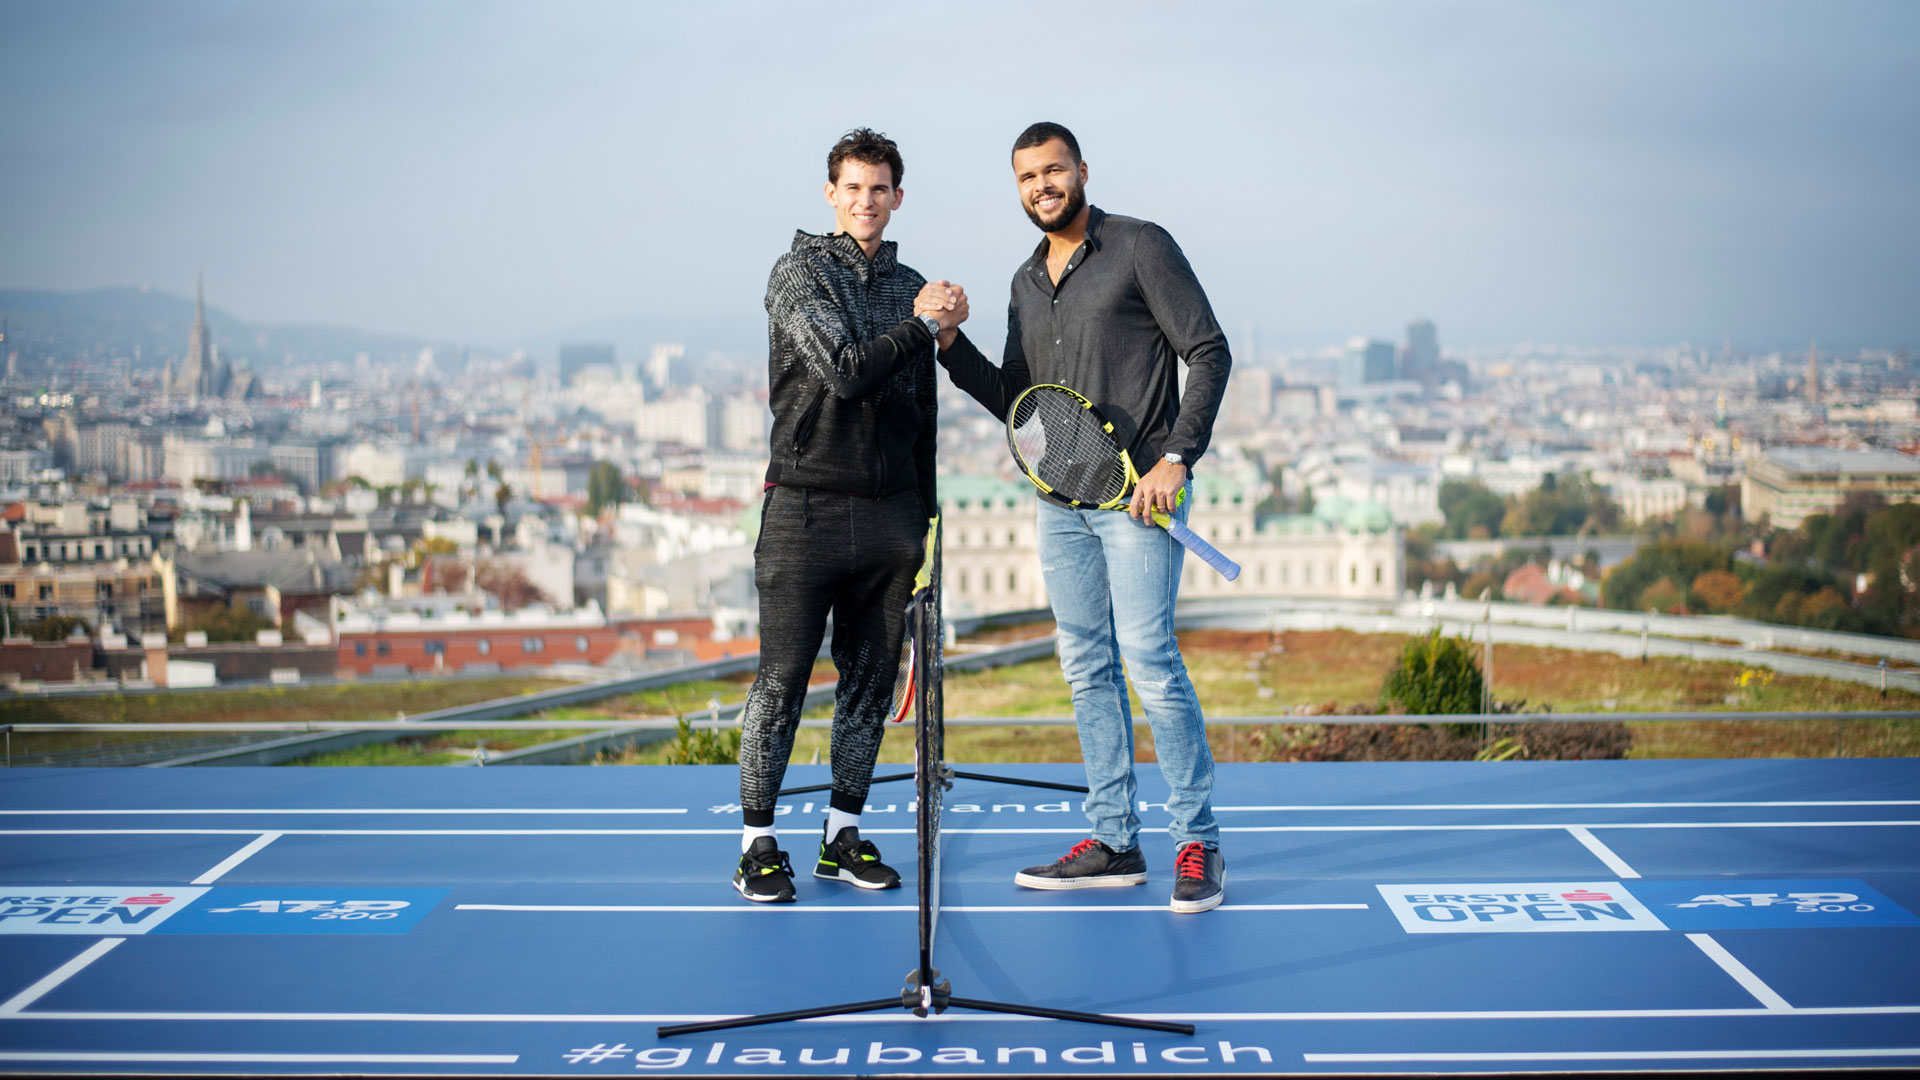 Dominic Thiem & Jo-Wilfried Tsonga on the Erste Campus roof